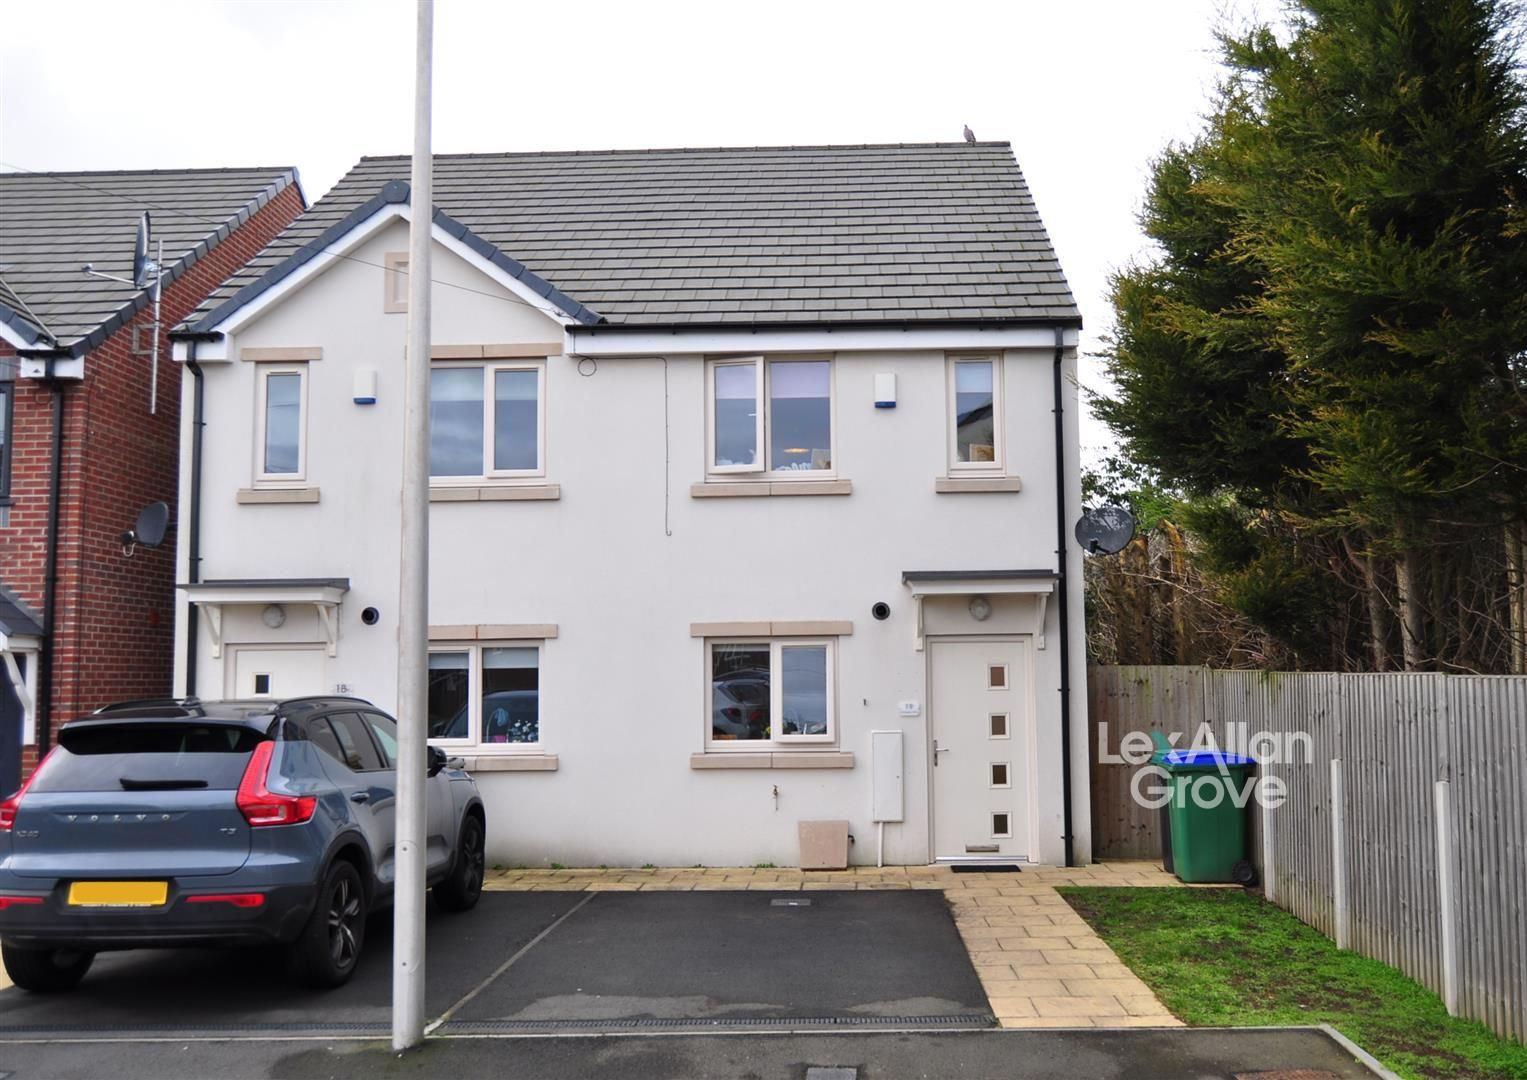 2 bed semi-detached for sale - Property Image 1